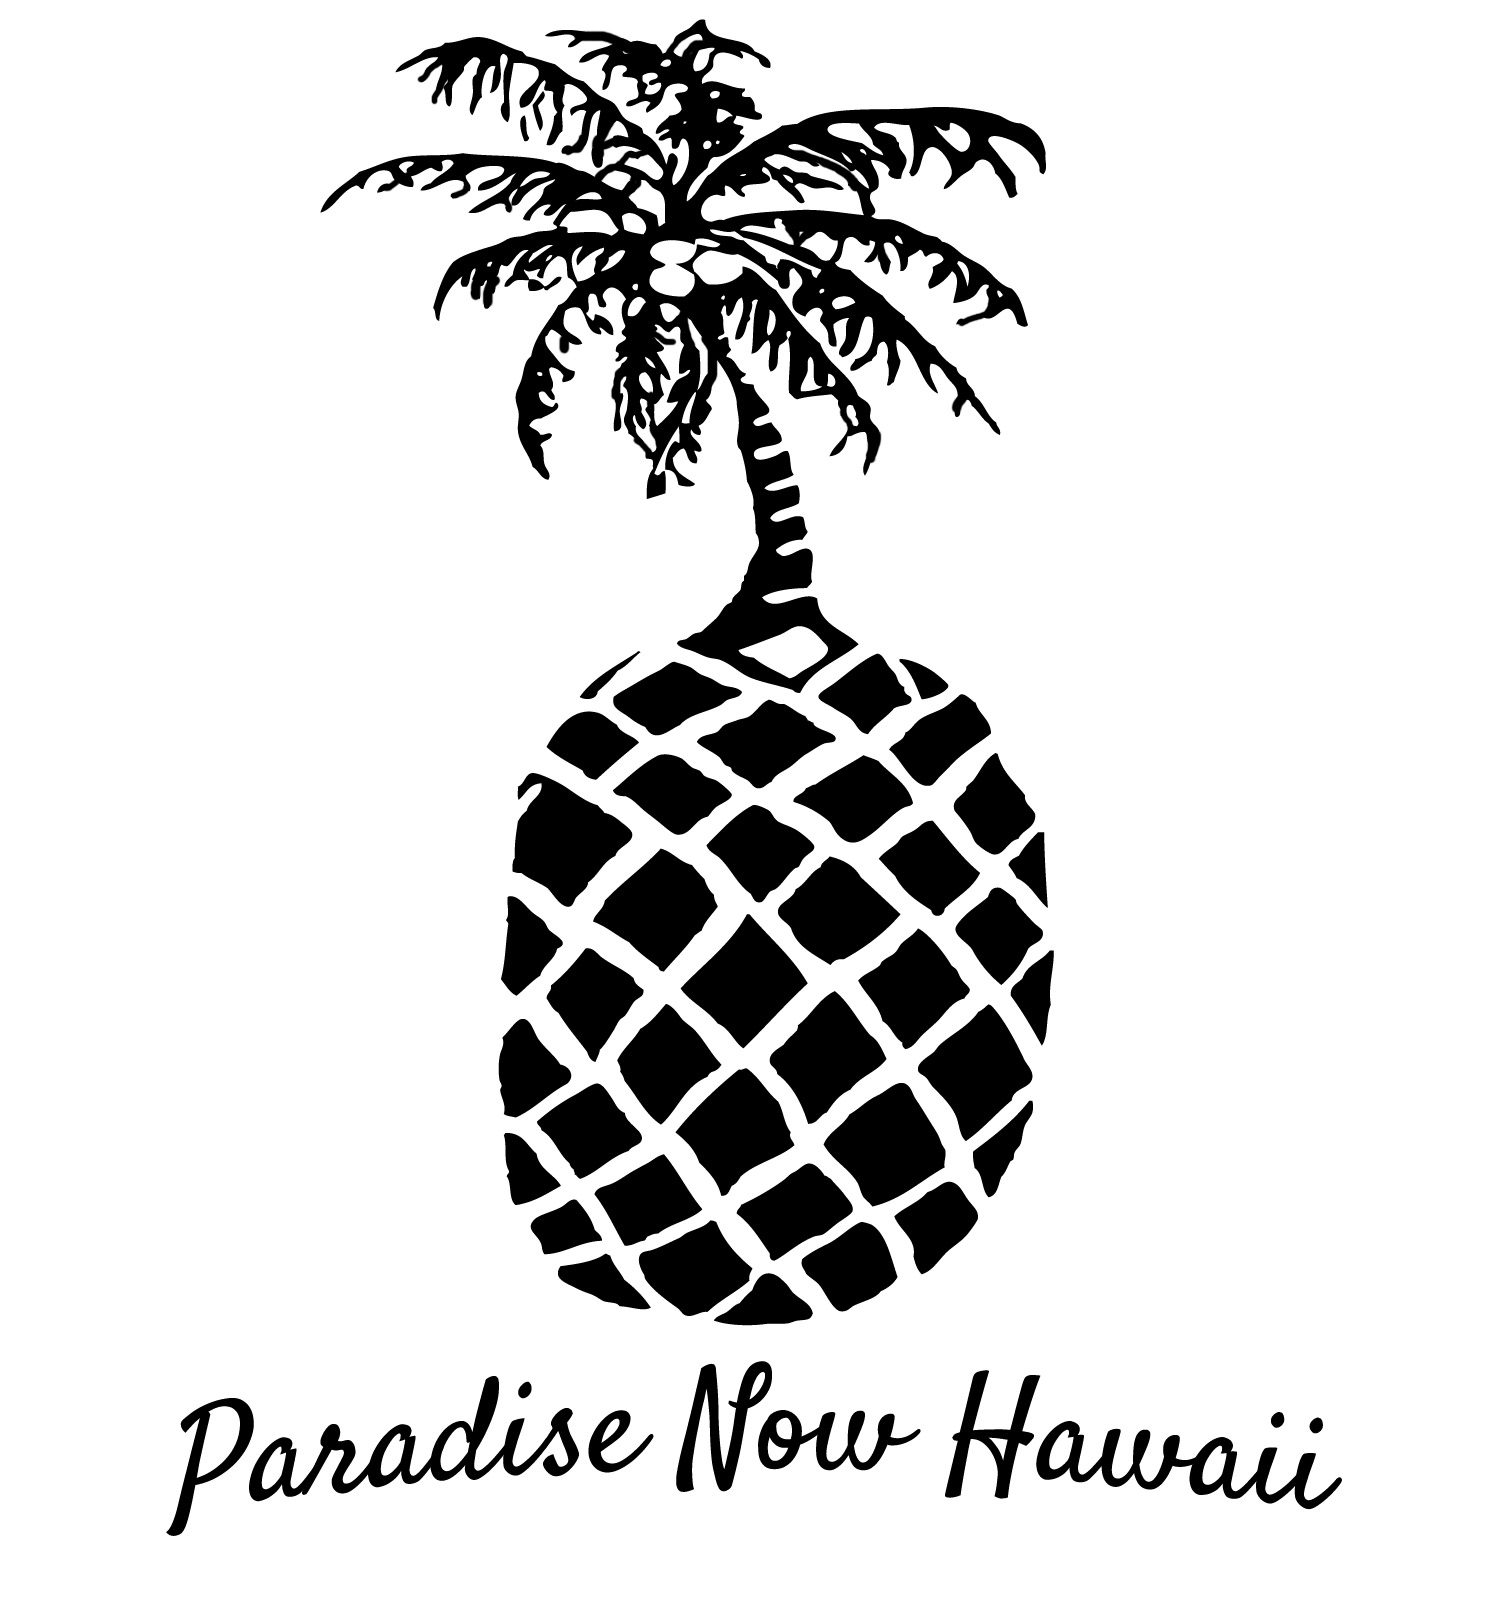 Paradise Now Hawaii